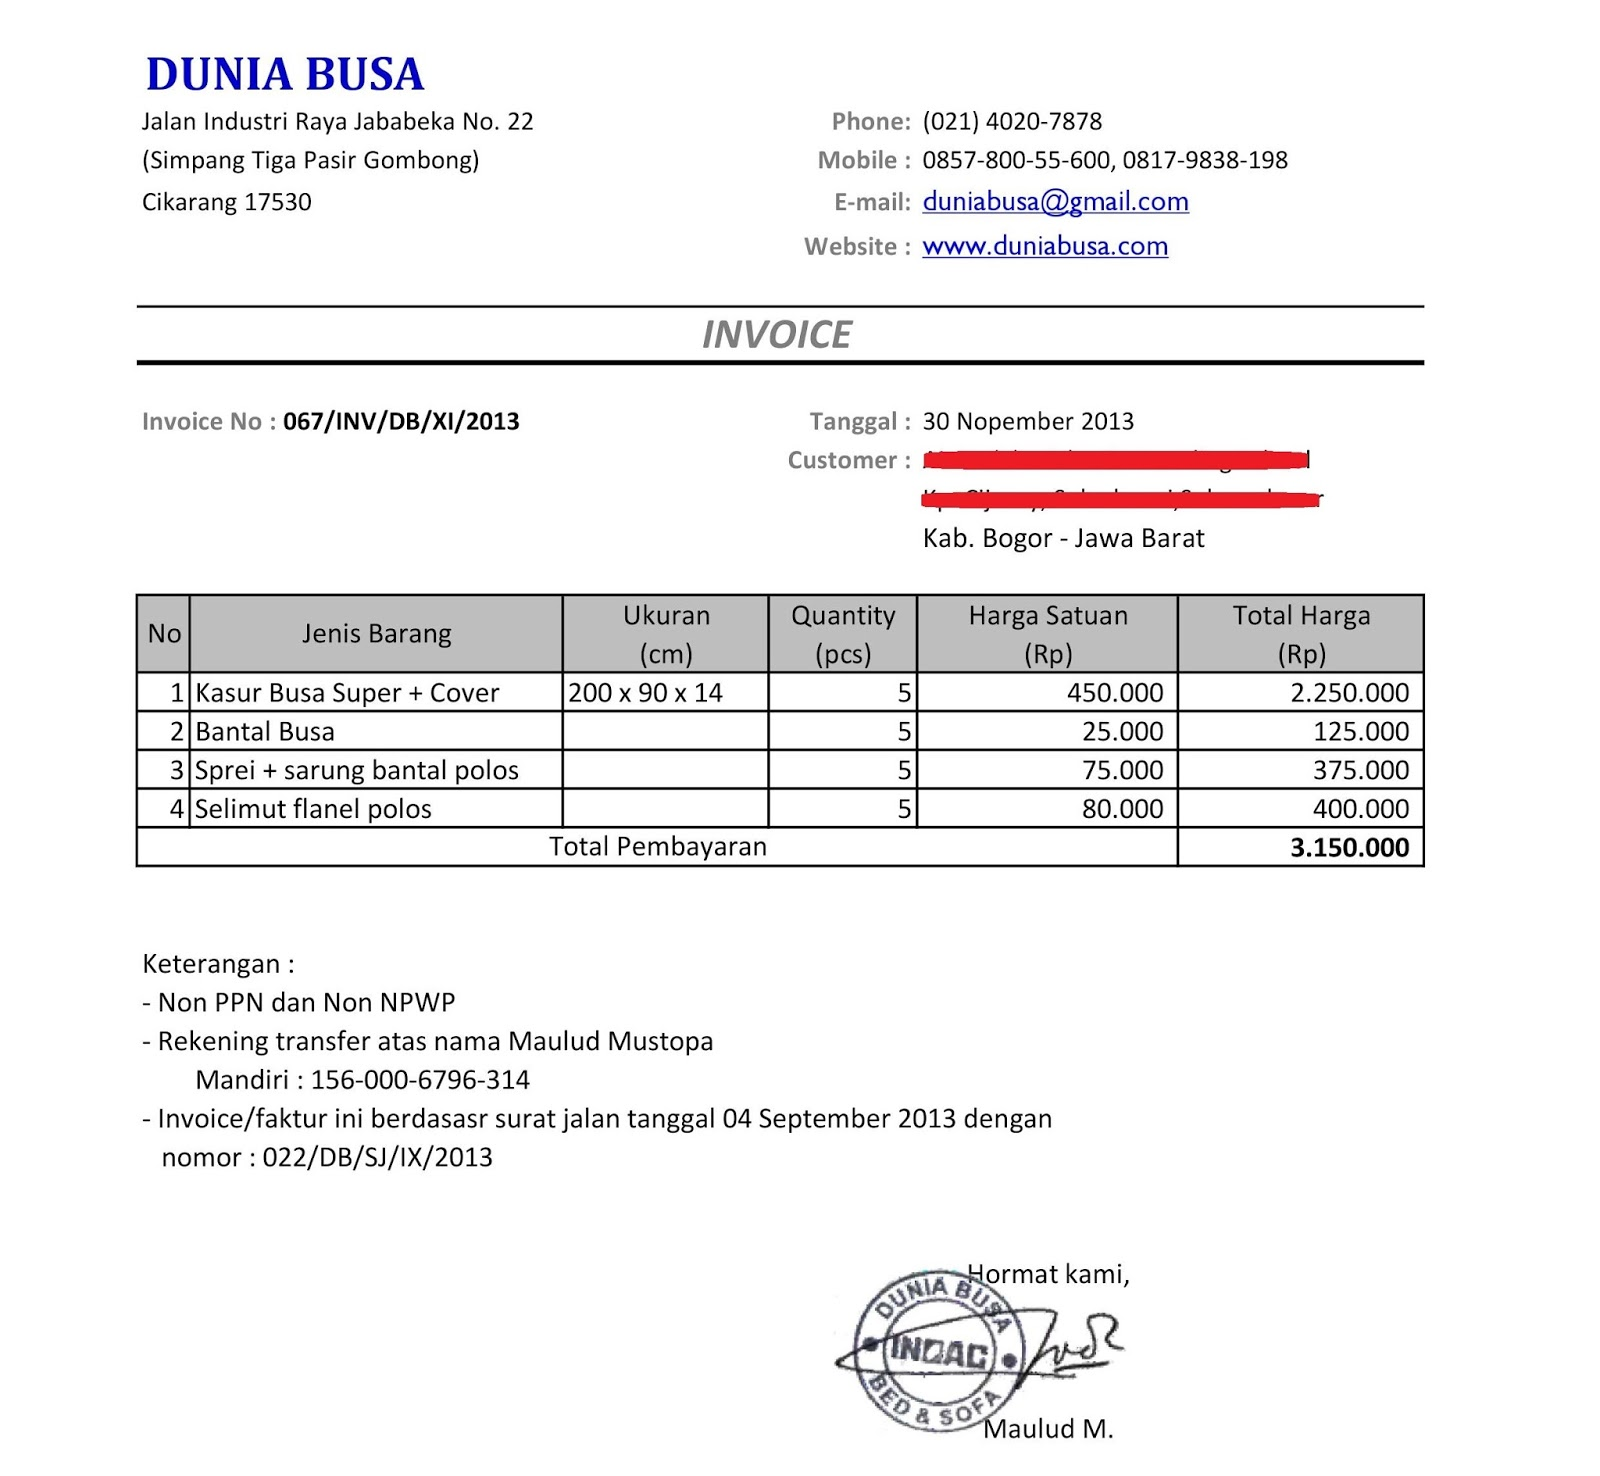 Usdgus  Remarkable Free Invoice Online  Create Invoice Online  Invoice Template  With Heavenly Contoh Format Invoice Atau Surat Tagihan  Brankas Arsip  Free Invoice Online With Endearing Rental Car Invoice Also Finding Invoice Price On New Cars In Addition Suicide Invoice And Invoice Header As Well As  Nissan Altima Invoice Price Additionally  Crv Invoice From Sklepco With Usdgus  Heavenly Free Invoice Online  Create Invoice Online  Invoice Template  With Endearing Contoh Format Invoice Atau Surat Tagihan  Brankas Arsip  Free Invoice Online And Remarkable Rental Car Invoice Also Finding Invoice Price On New Cars In Addition Suicide Invoice From Sklepco